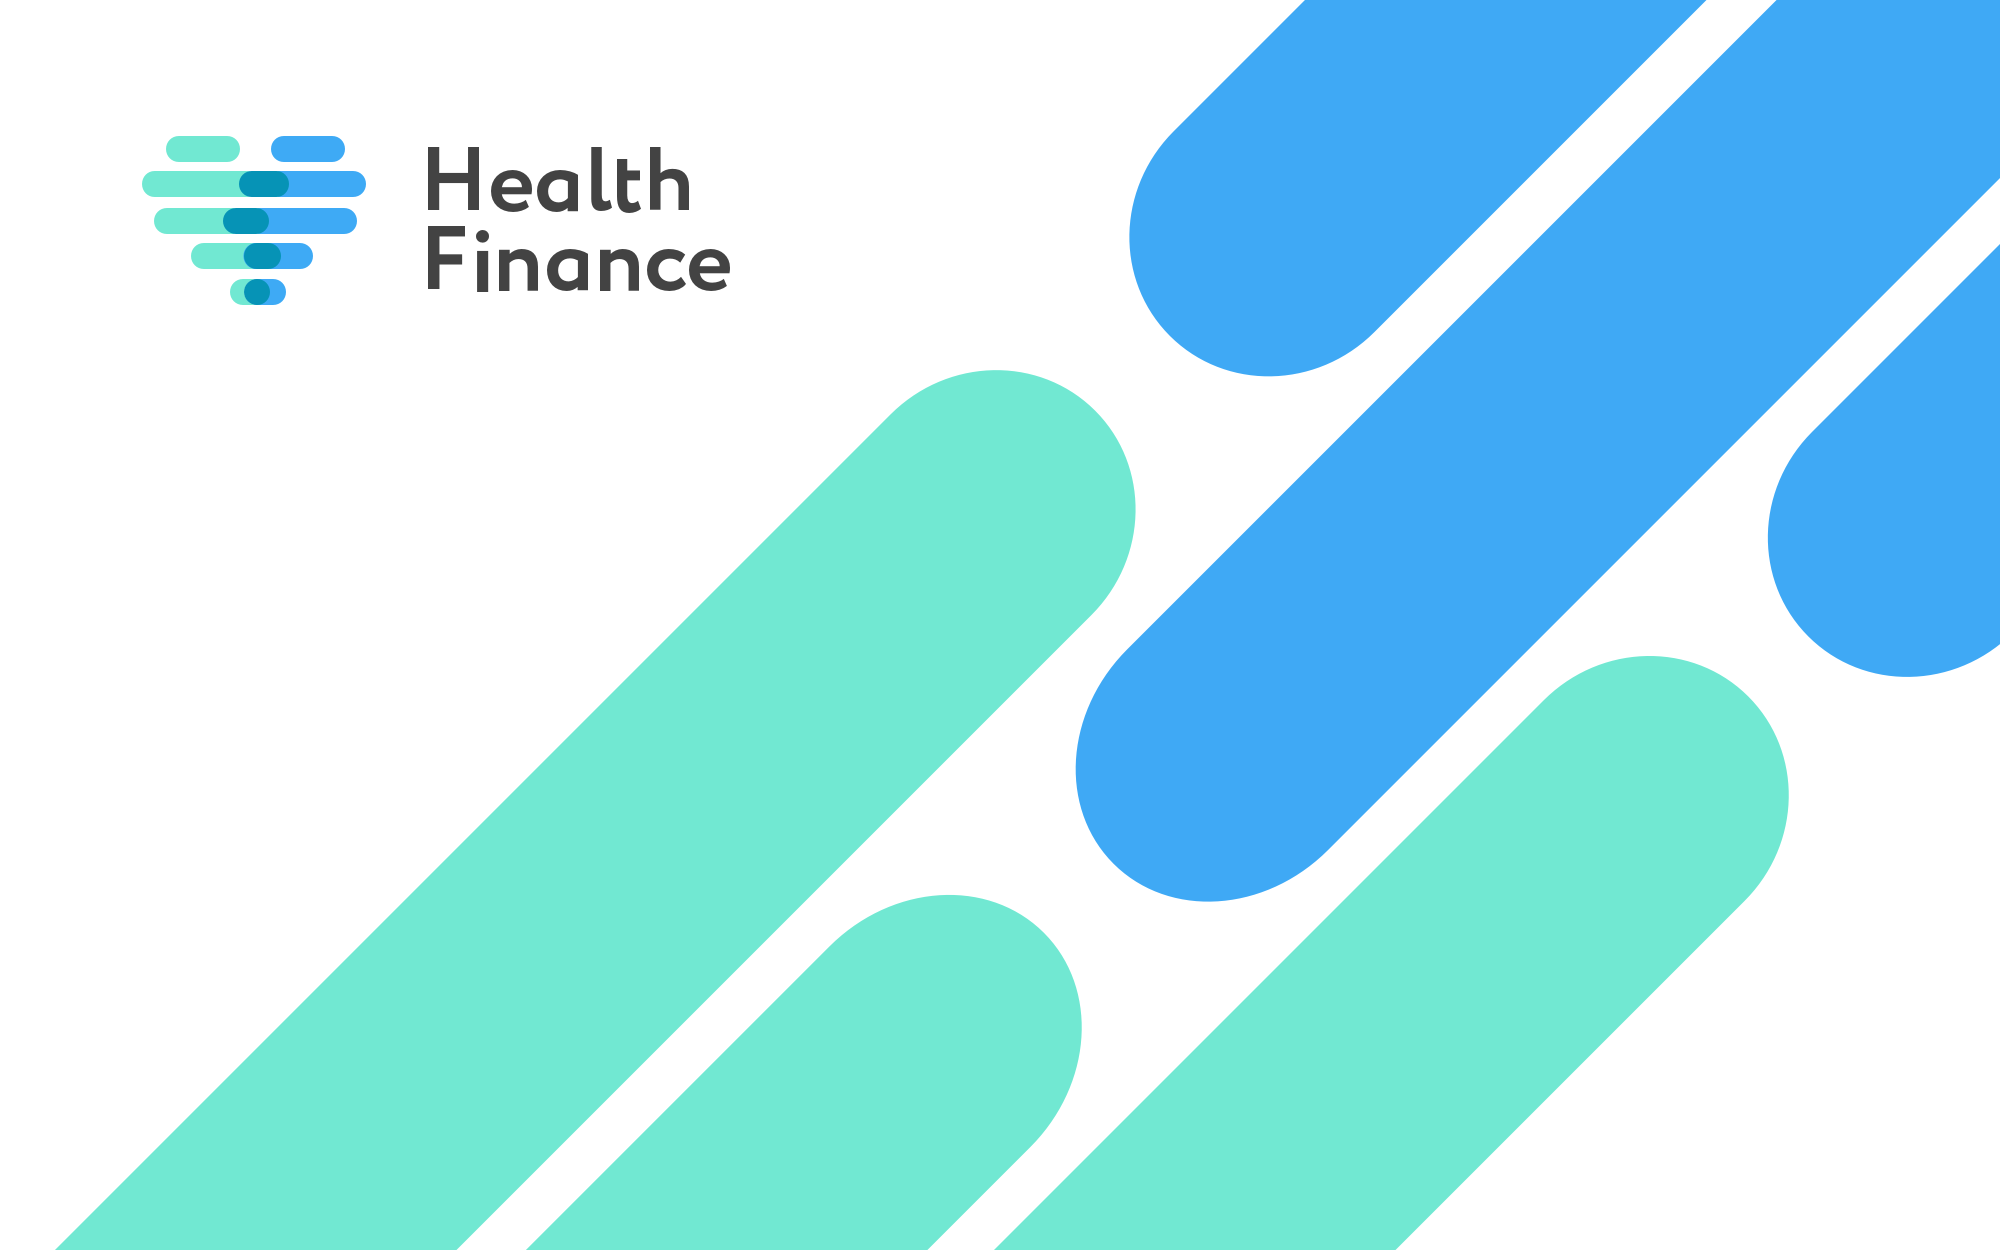 Health Finance logotype design